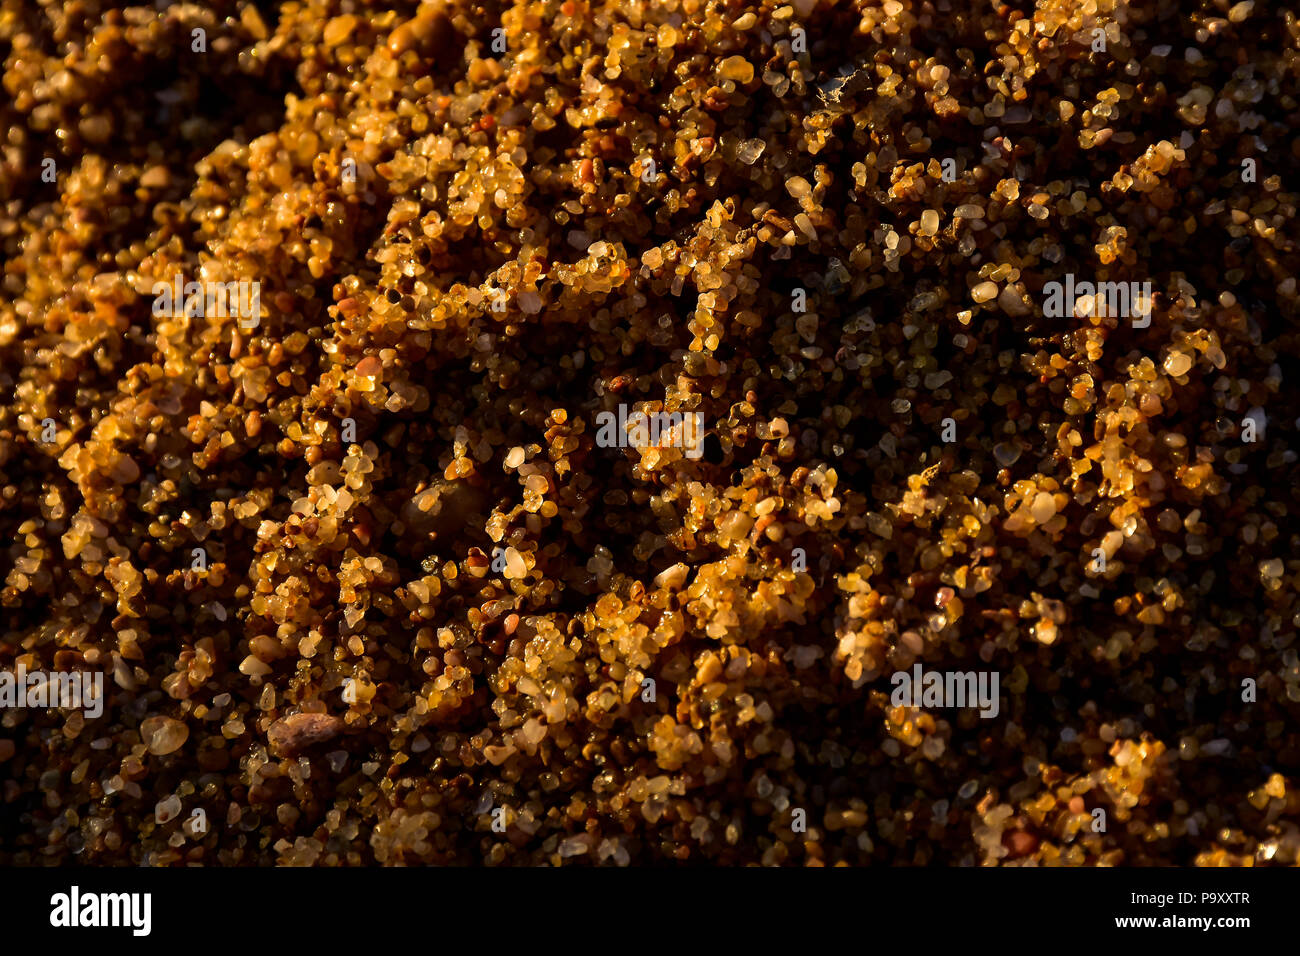 Sand on the beach showing its texture and surface and colors during sunset. Stock Photo